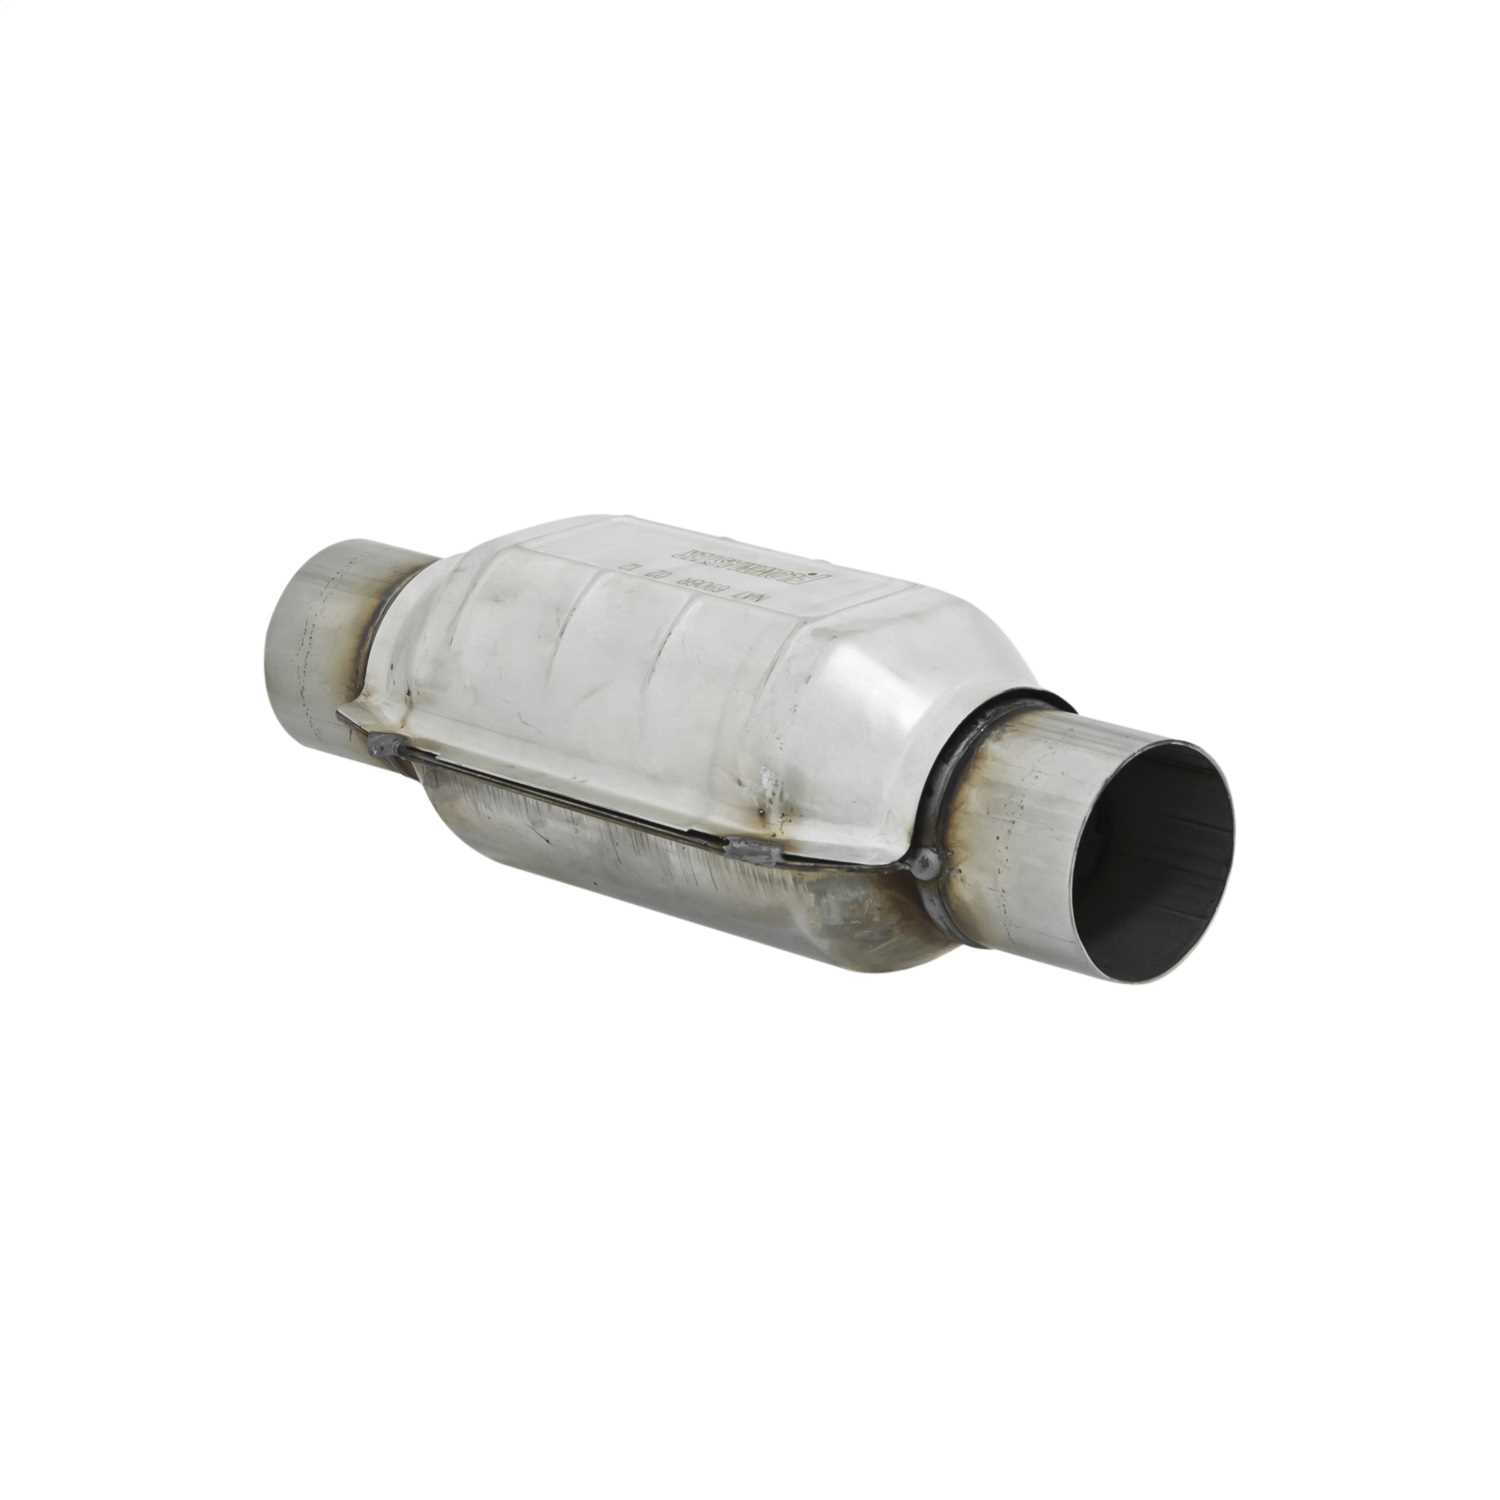 2220120 Flowmaster 49 State Catalytic Converters Universal Catalytic Converter